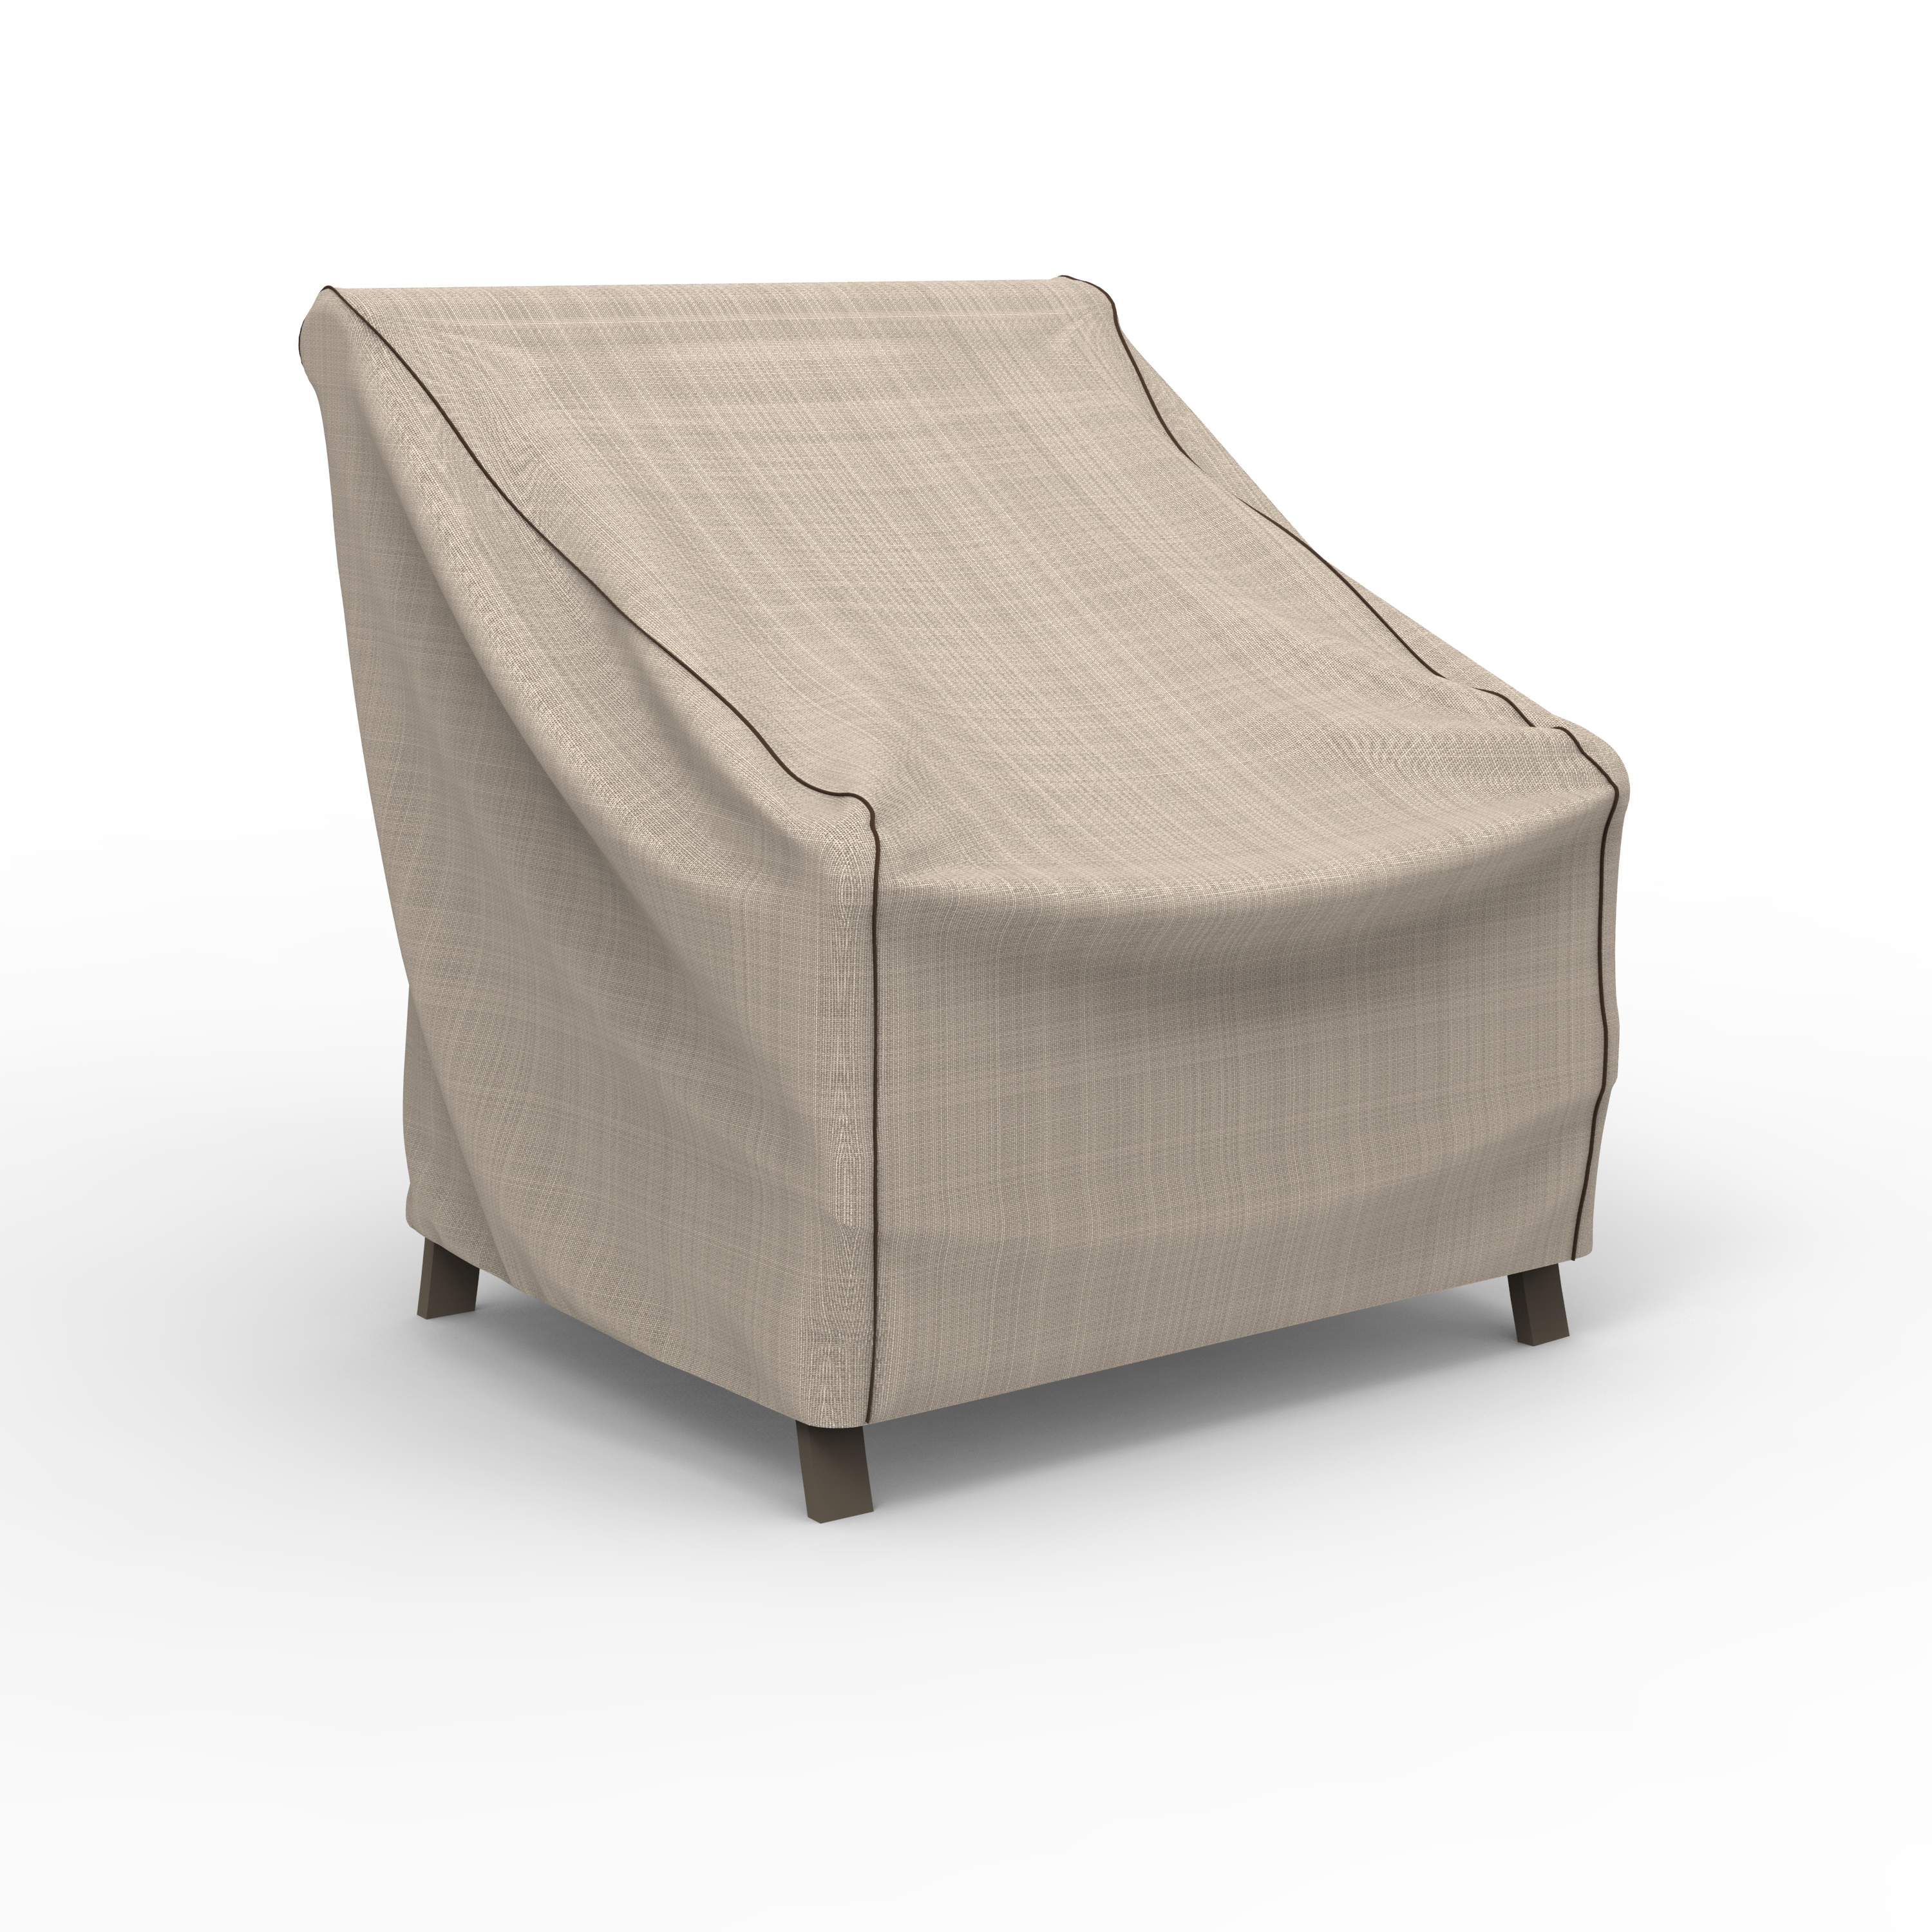 Budge English Garden Patio Chair Covers, Durable and Waterproof Outdoor Furniture Covers by Budge Industries